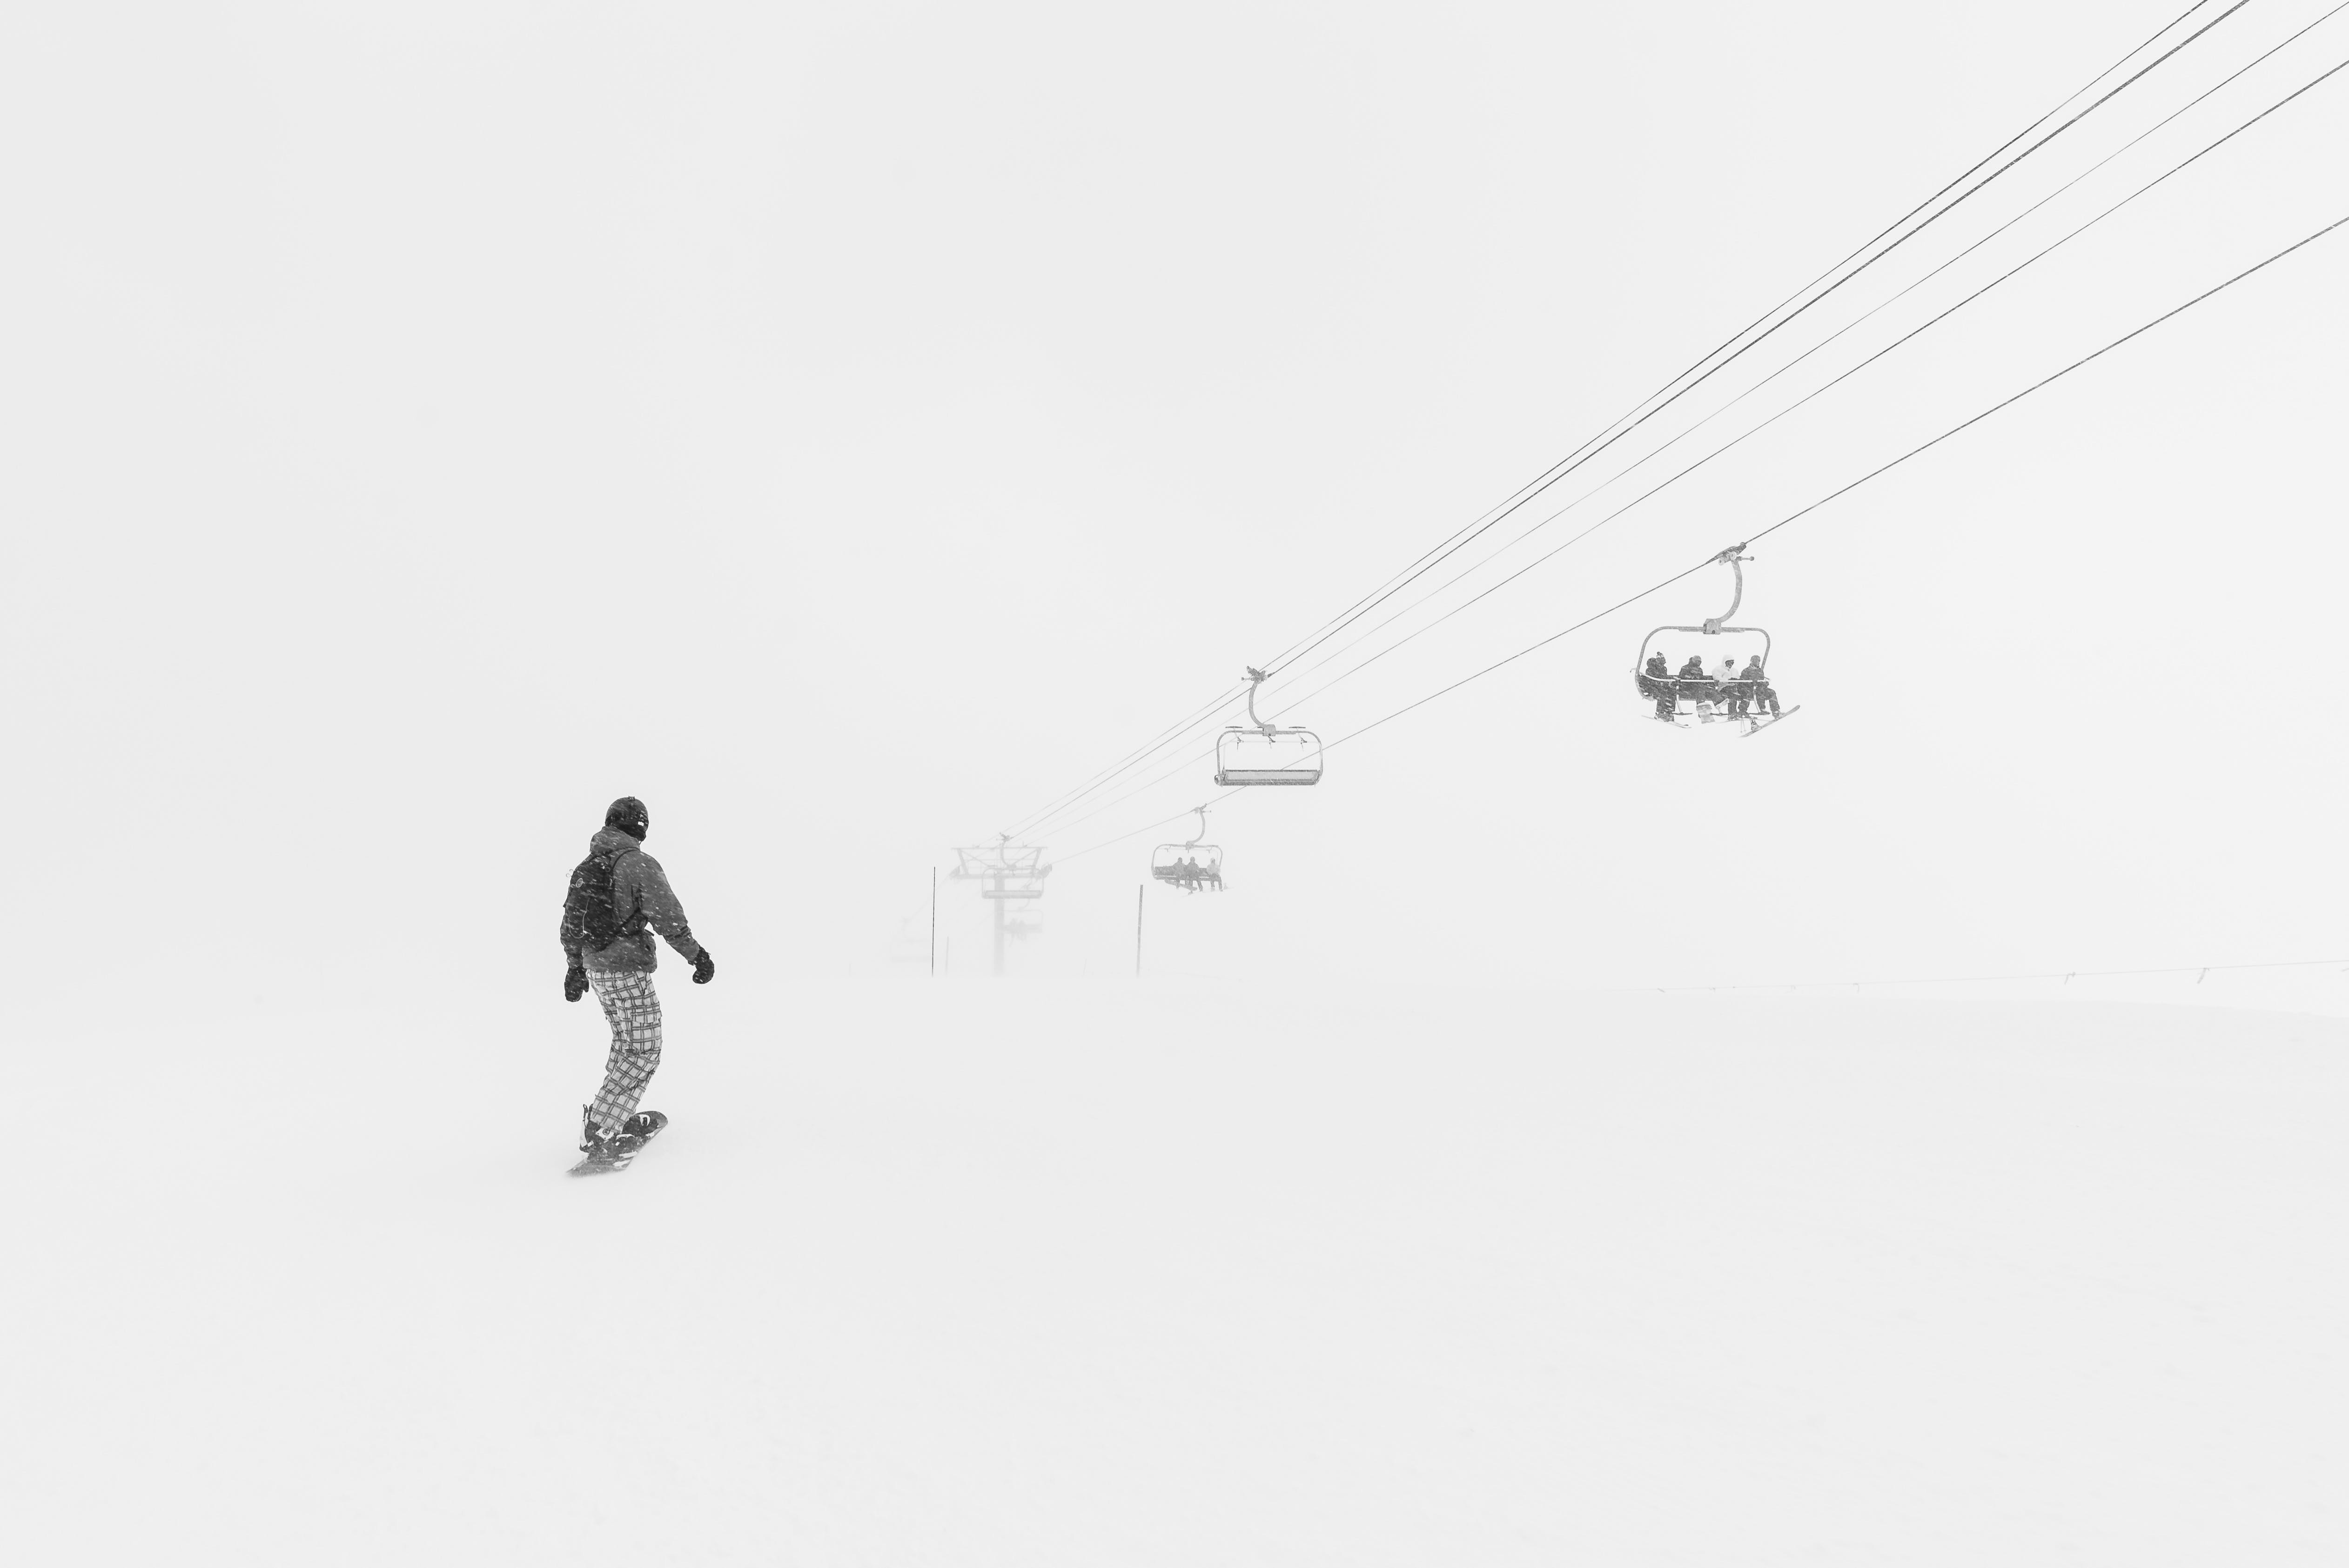 Man Walking in the Snow at Daytime